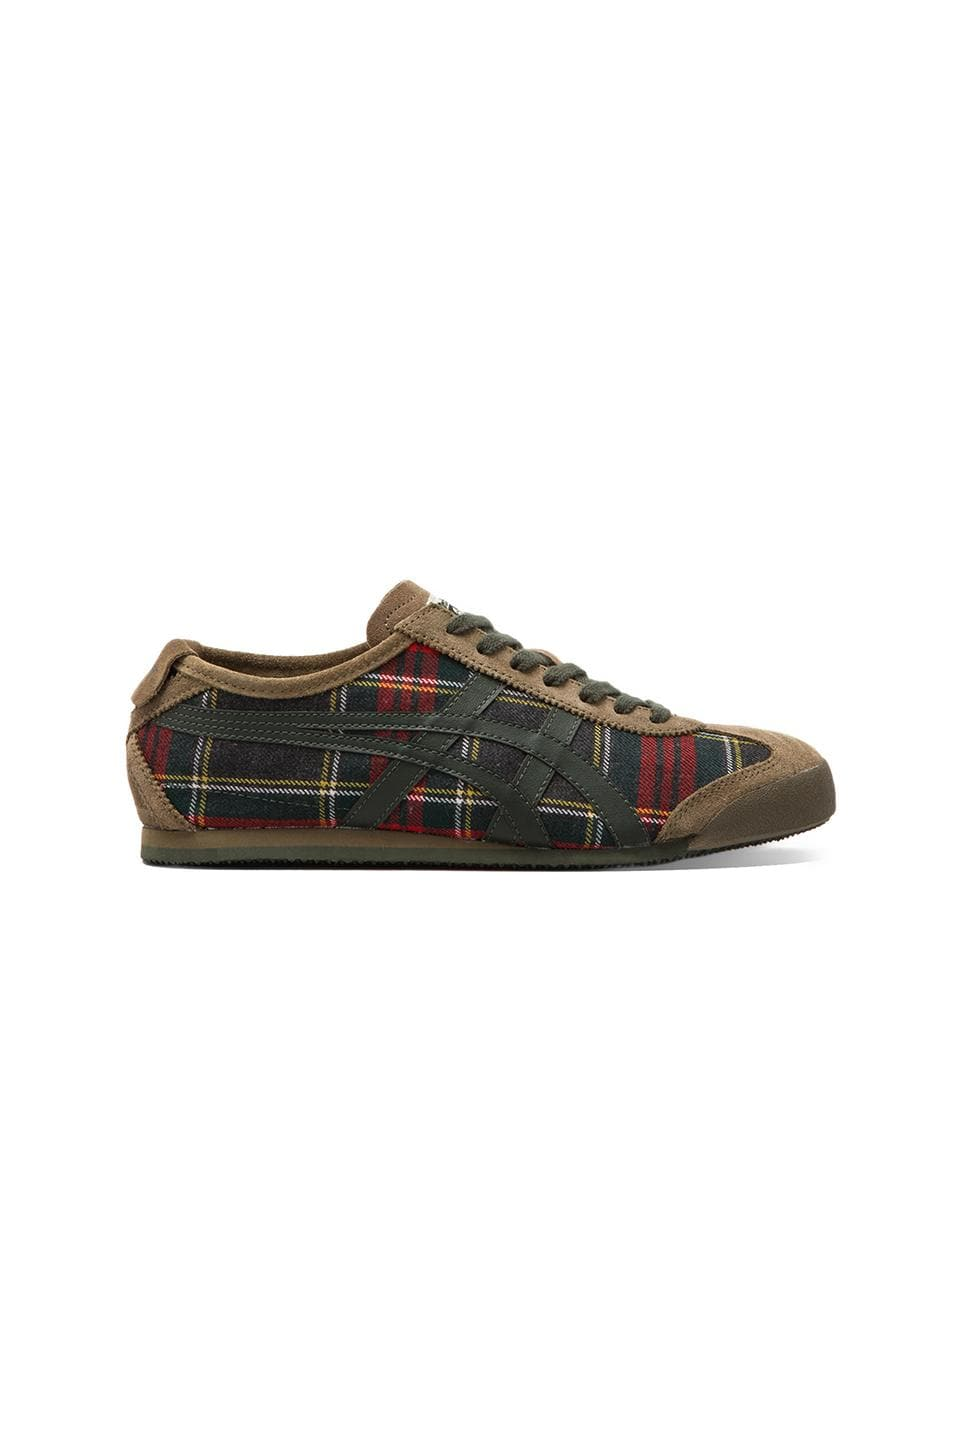 Onitsuka Tiger Mexico 66 in Red Tartan/Dark Grey